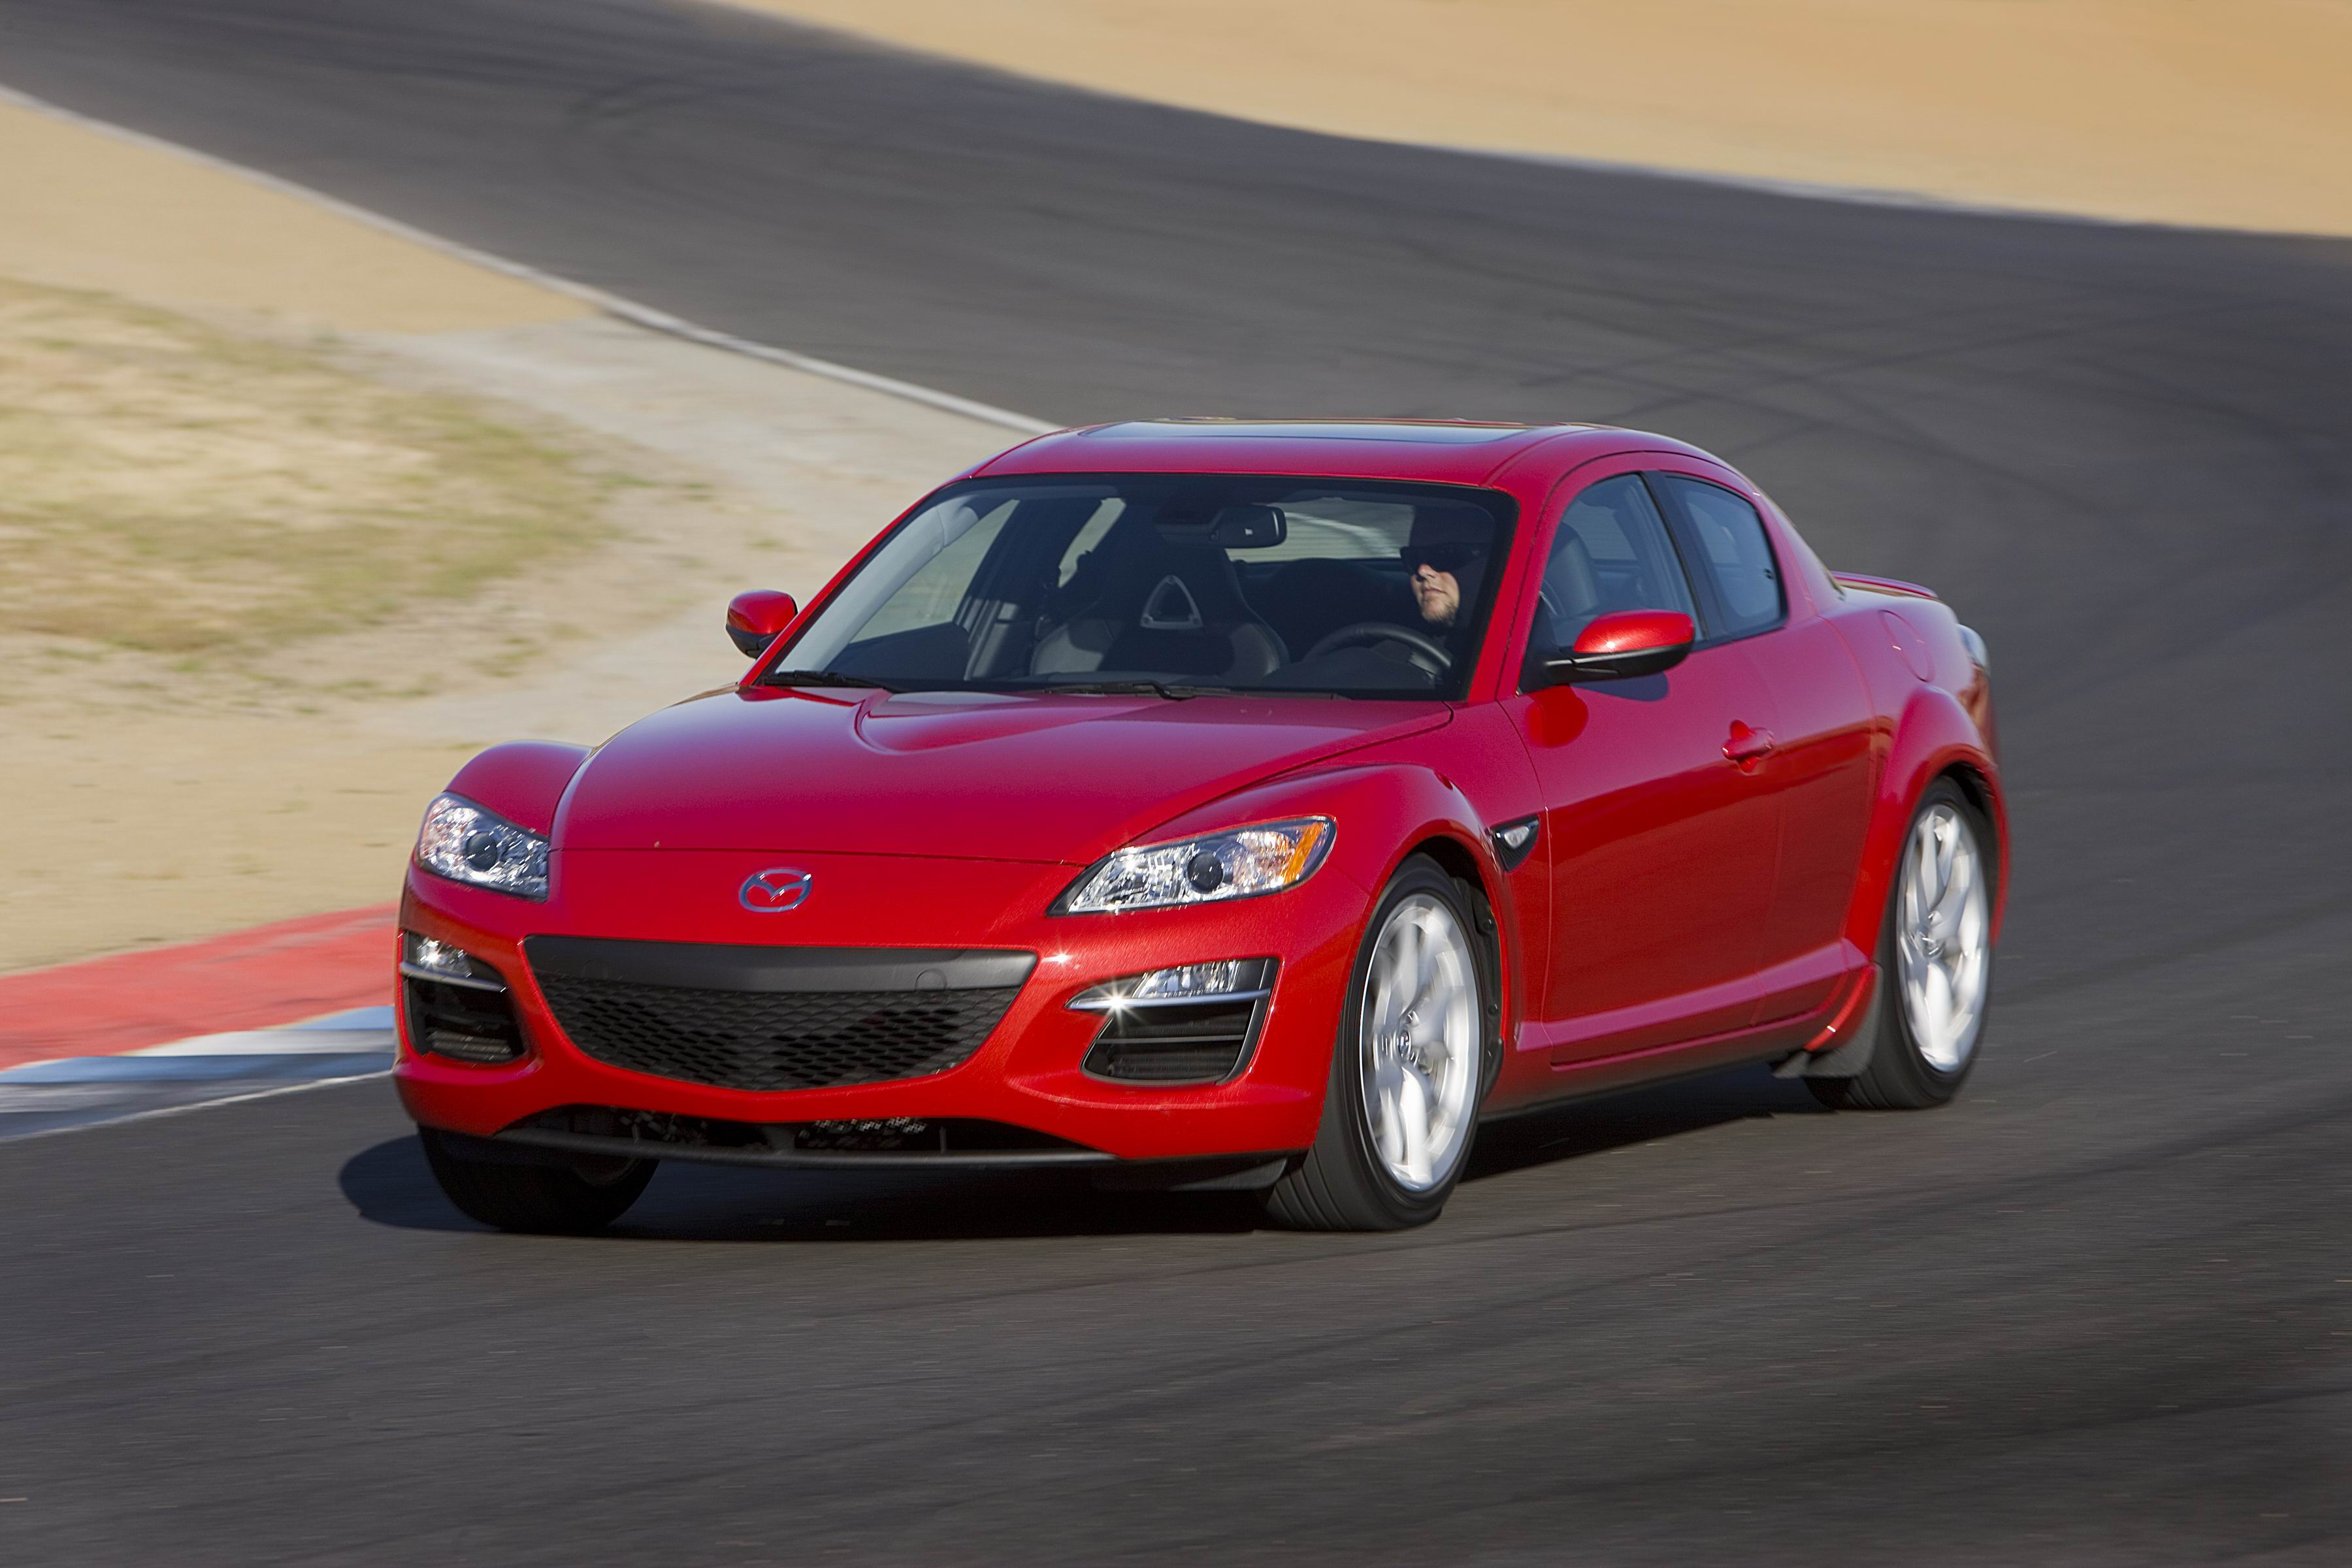 2011 Mazda Rx 8 Grand Touring Front Left Side View Driving4